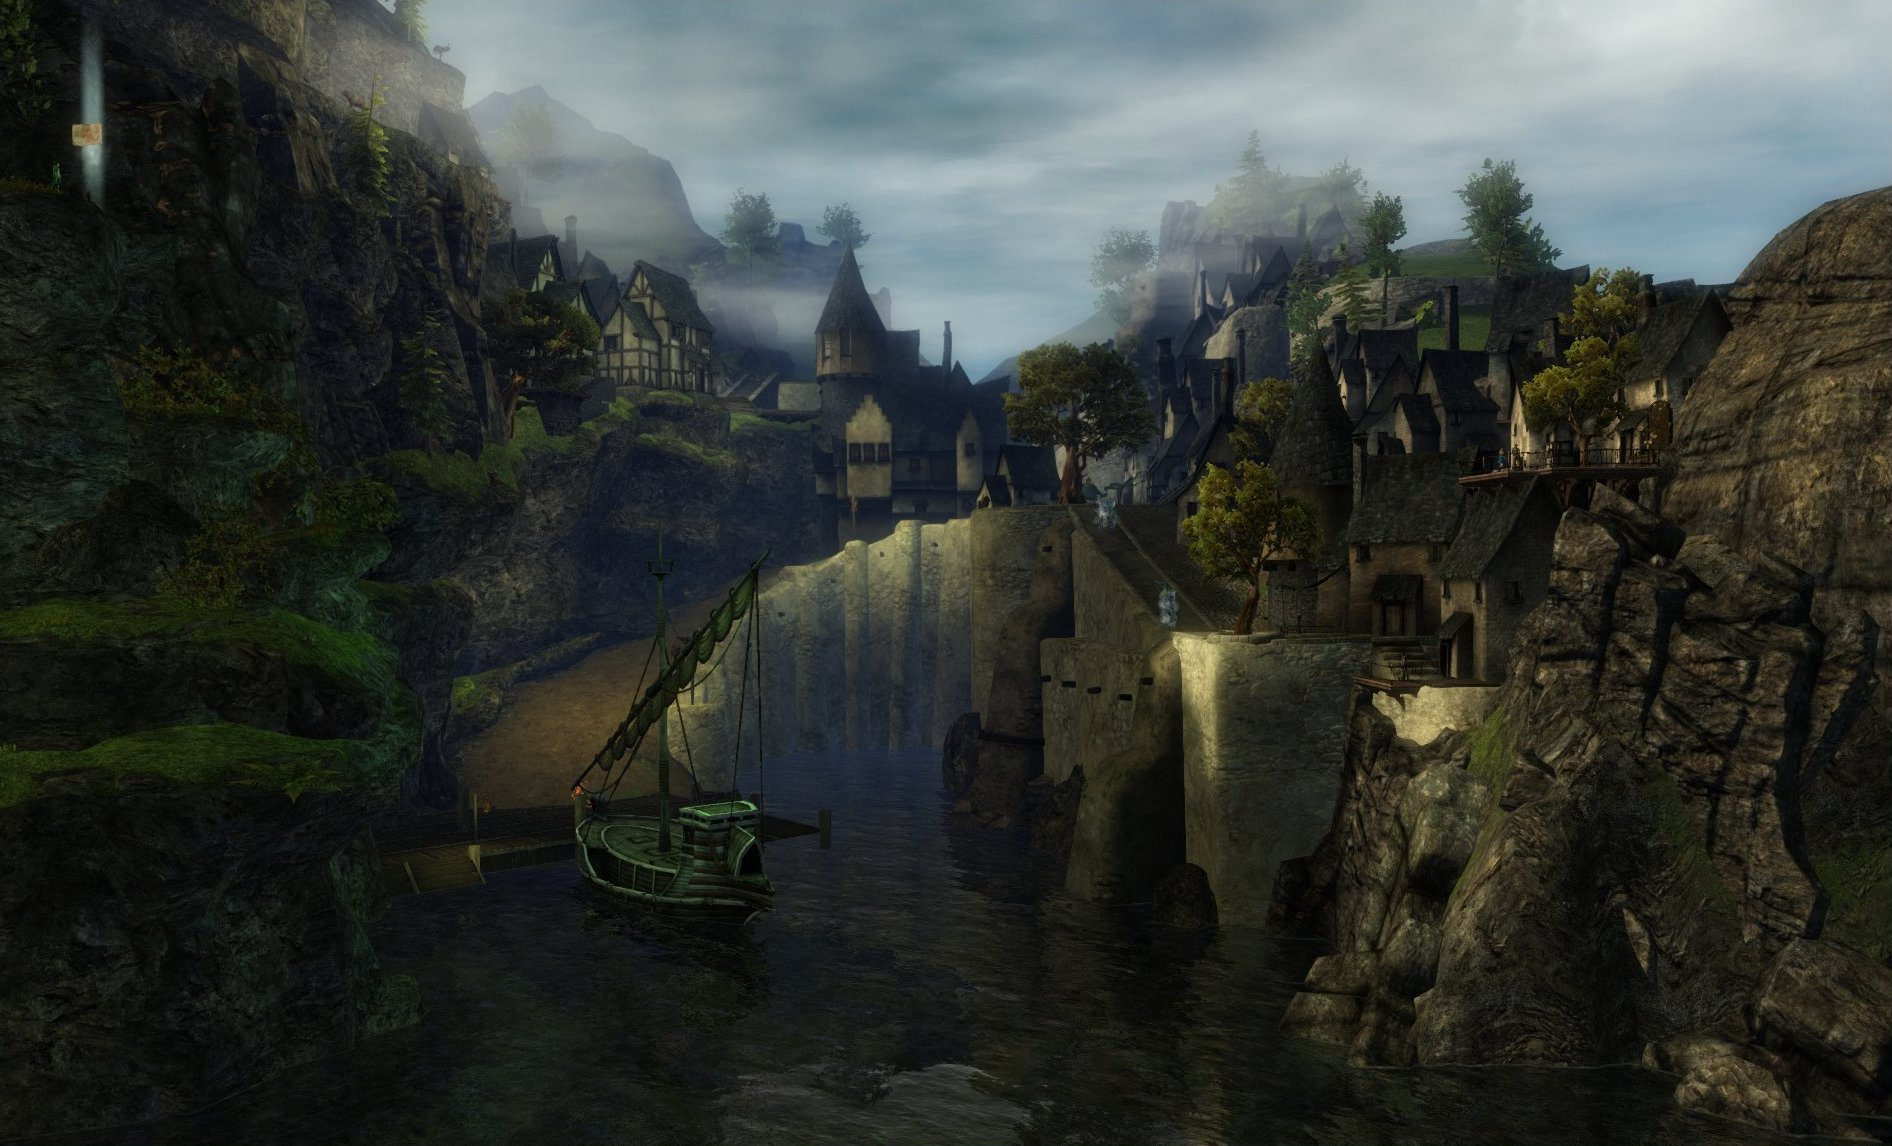 A Review of Guild Wars 2 by David Allen